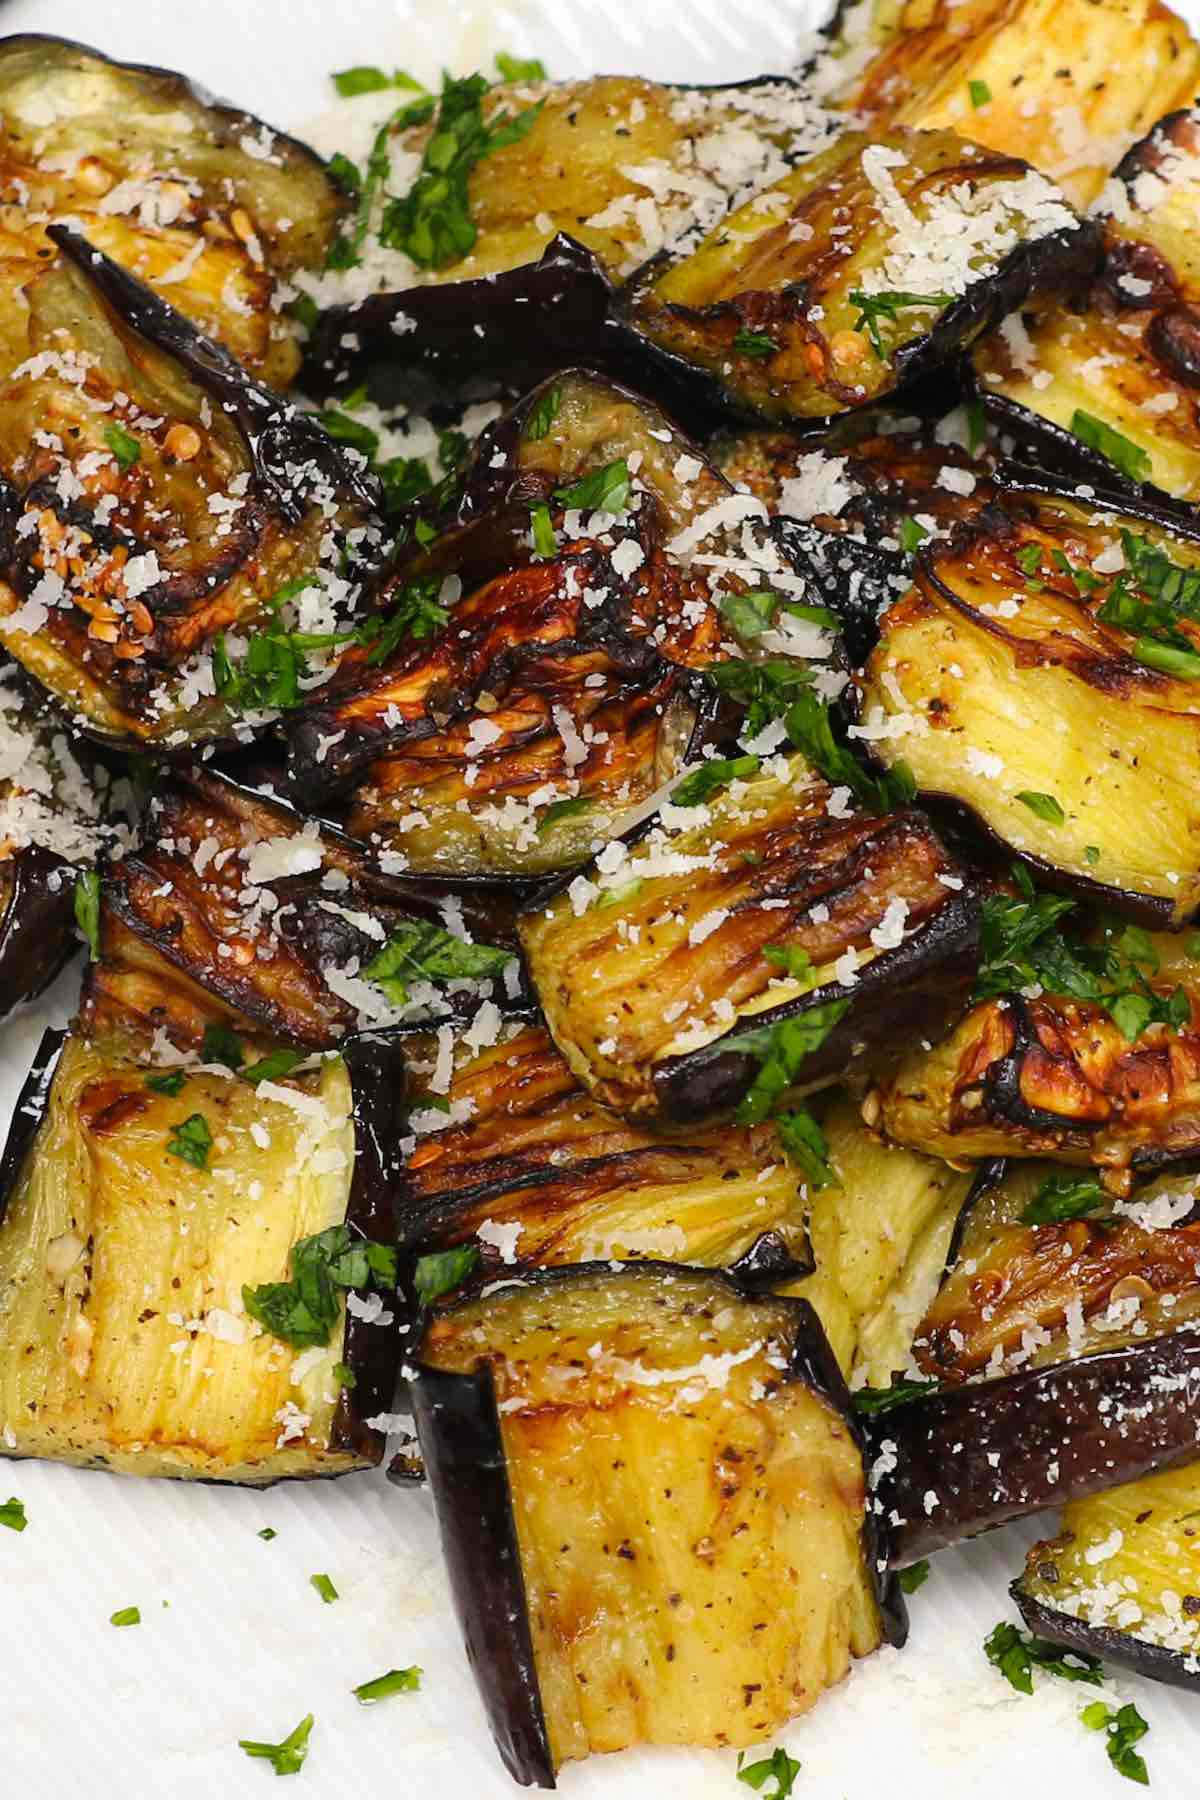 Air Fryer Eggplant on a serving plate garnished with grated parmesan and parsley.